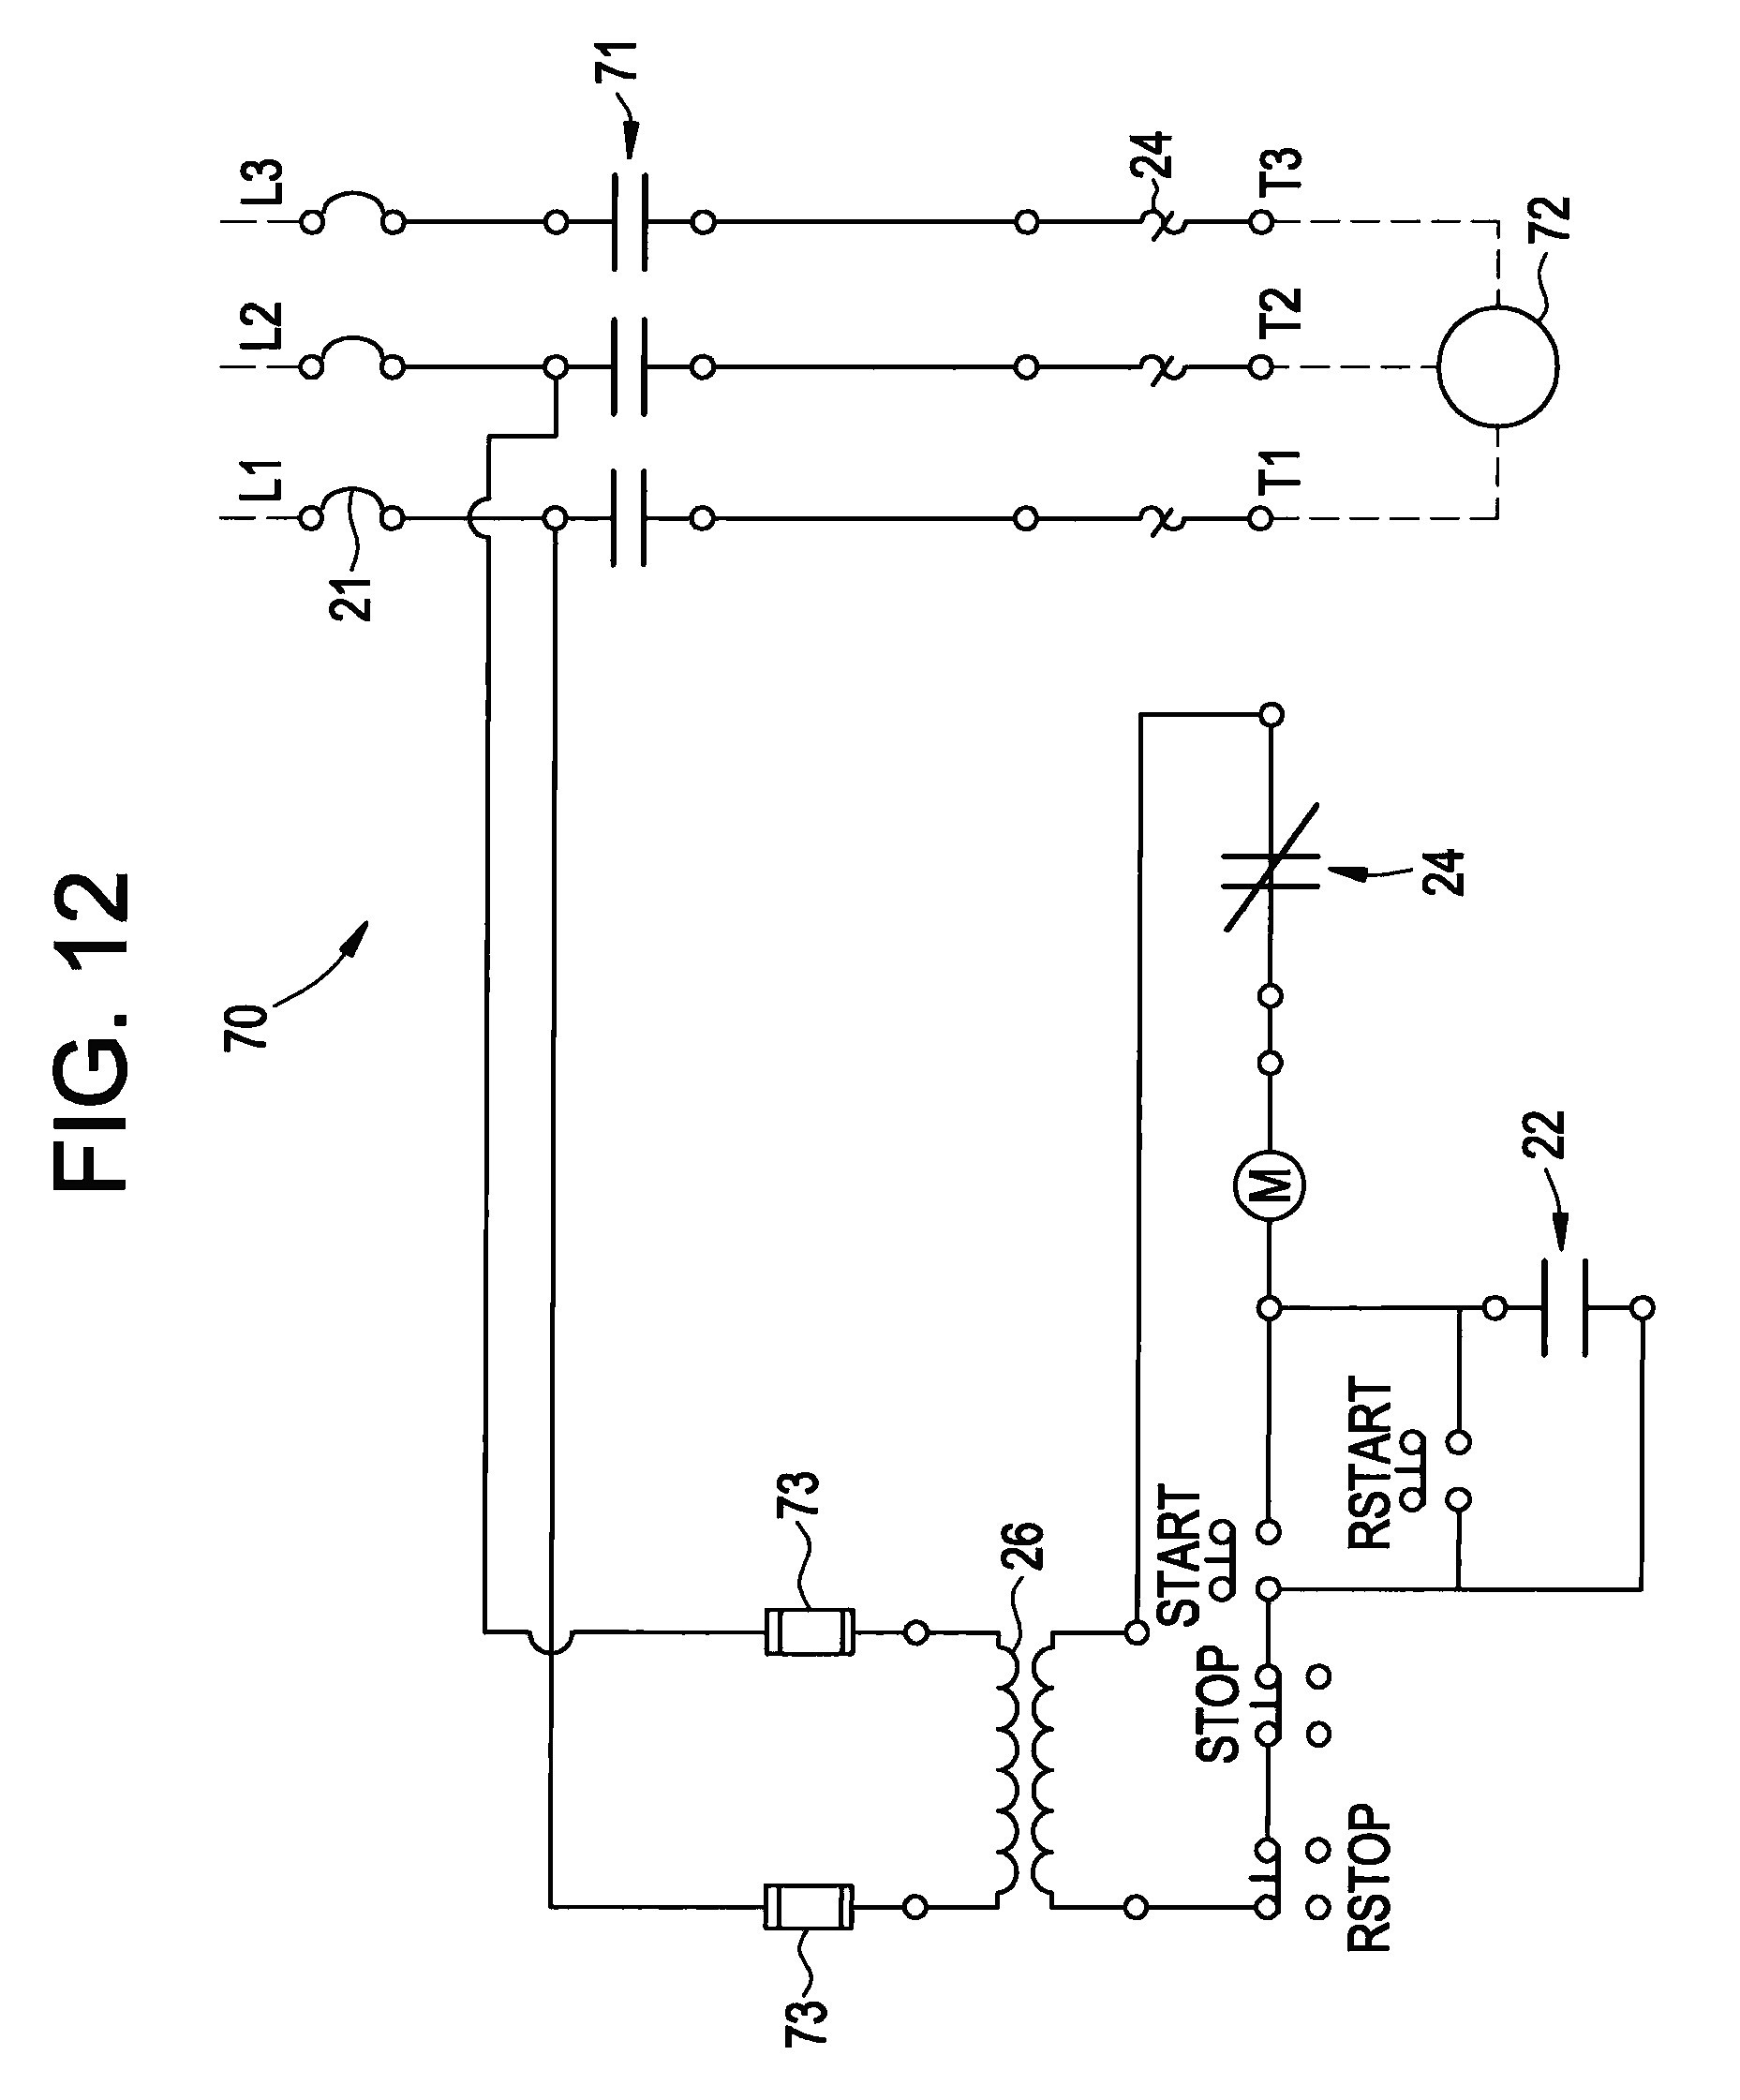 eaton atc wiring diagram kk 1071  eaton pocket wiring manual  kk 1071  eaton pocket wiring manual